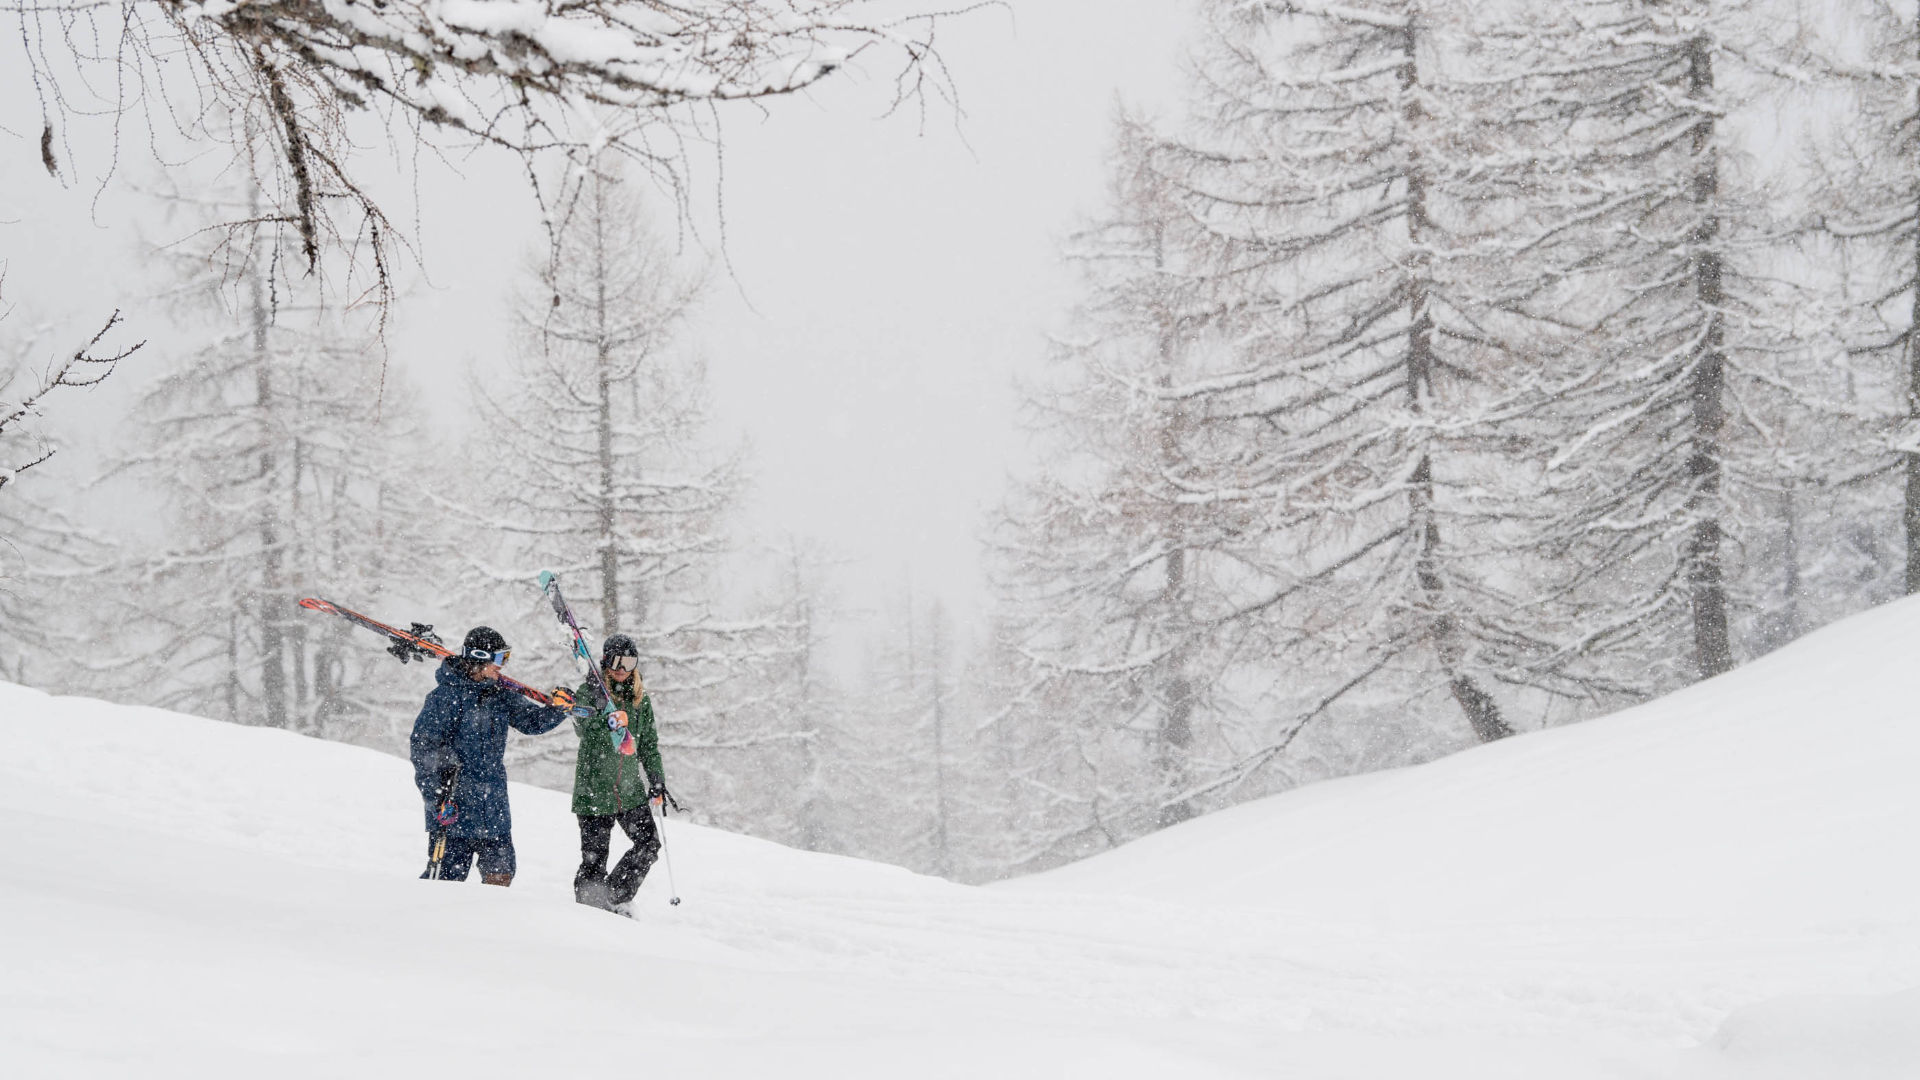 Two skiers walking in overcast and snowing conditions in the mountains